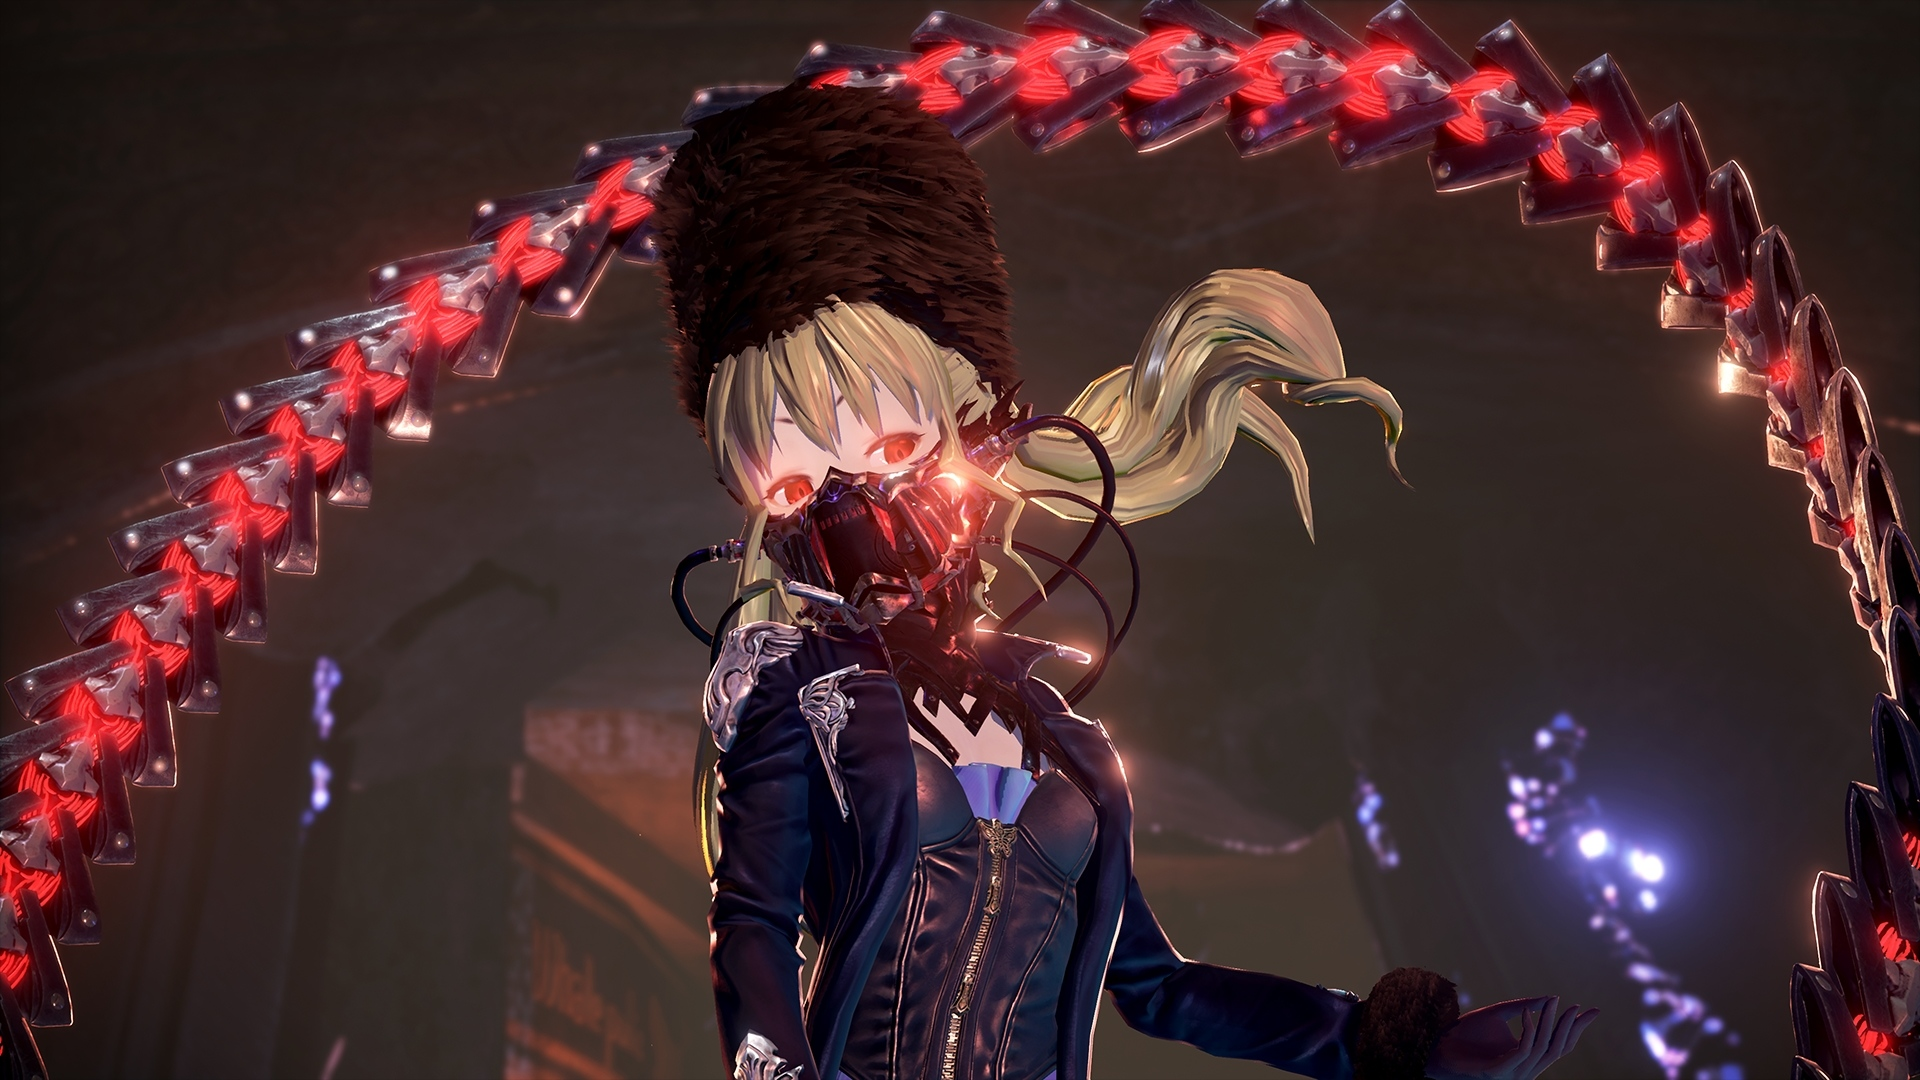 code vein pictures wallpaper 68784